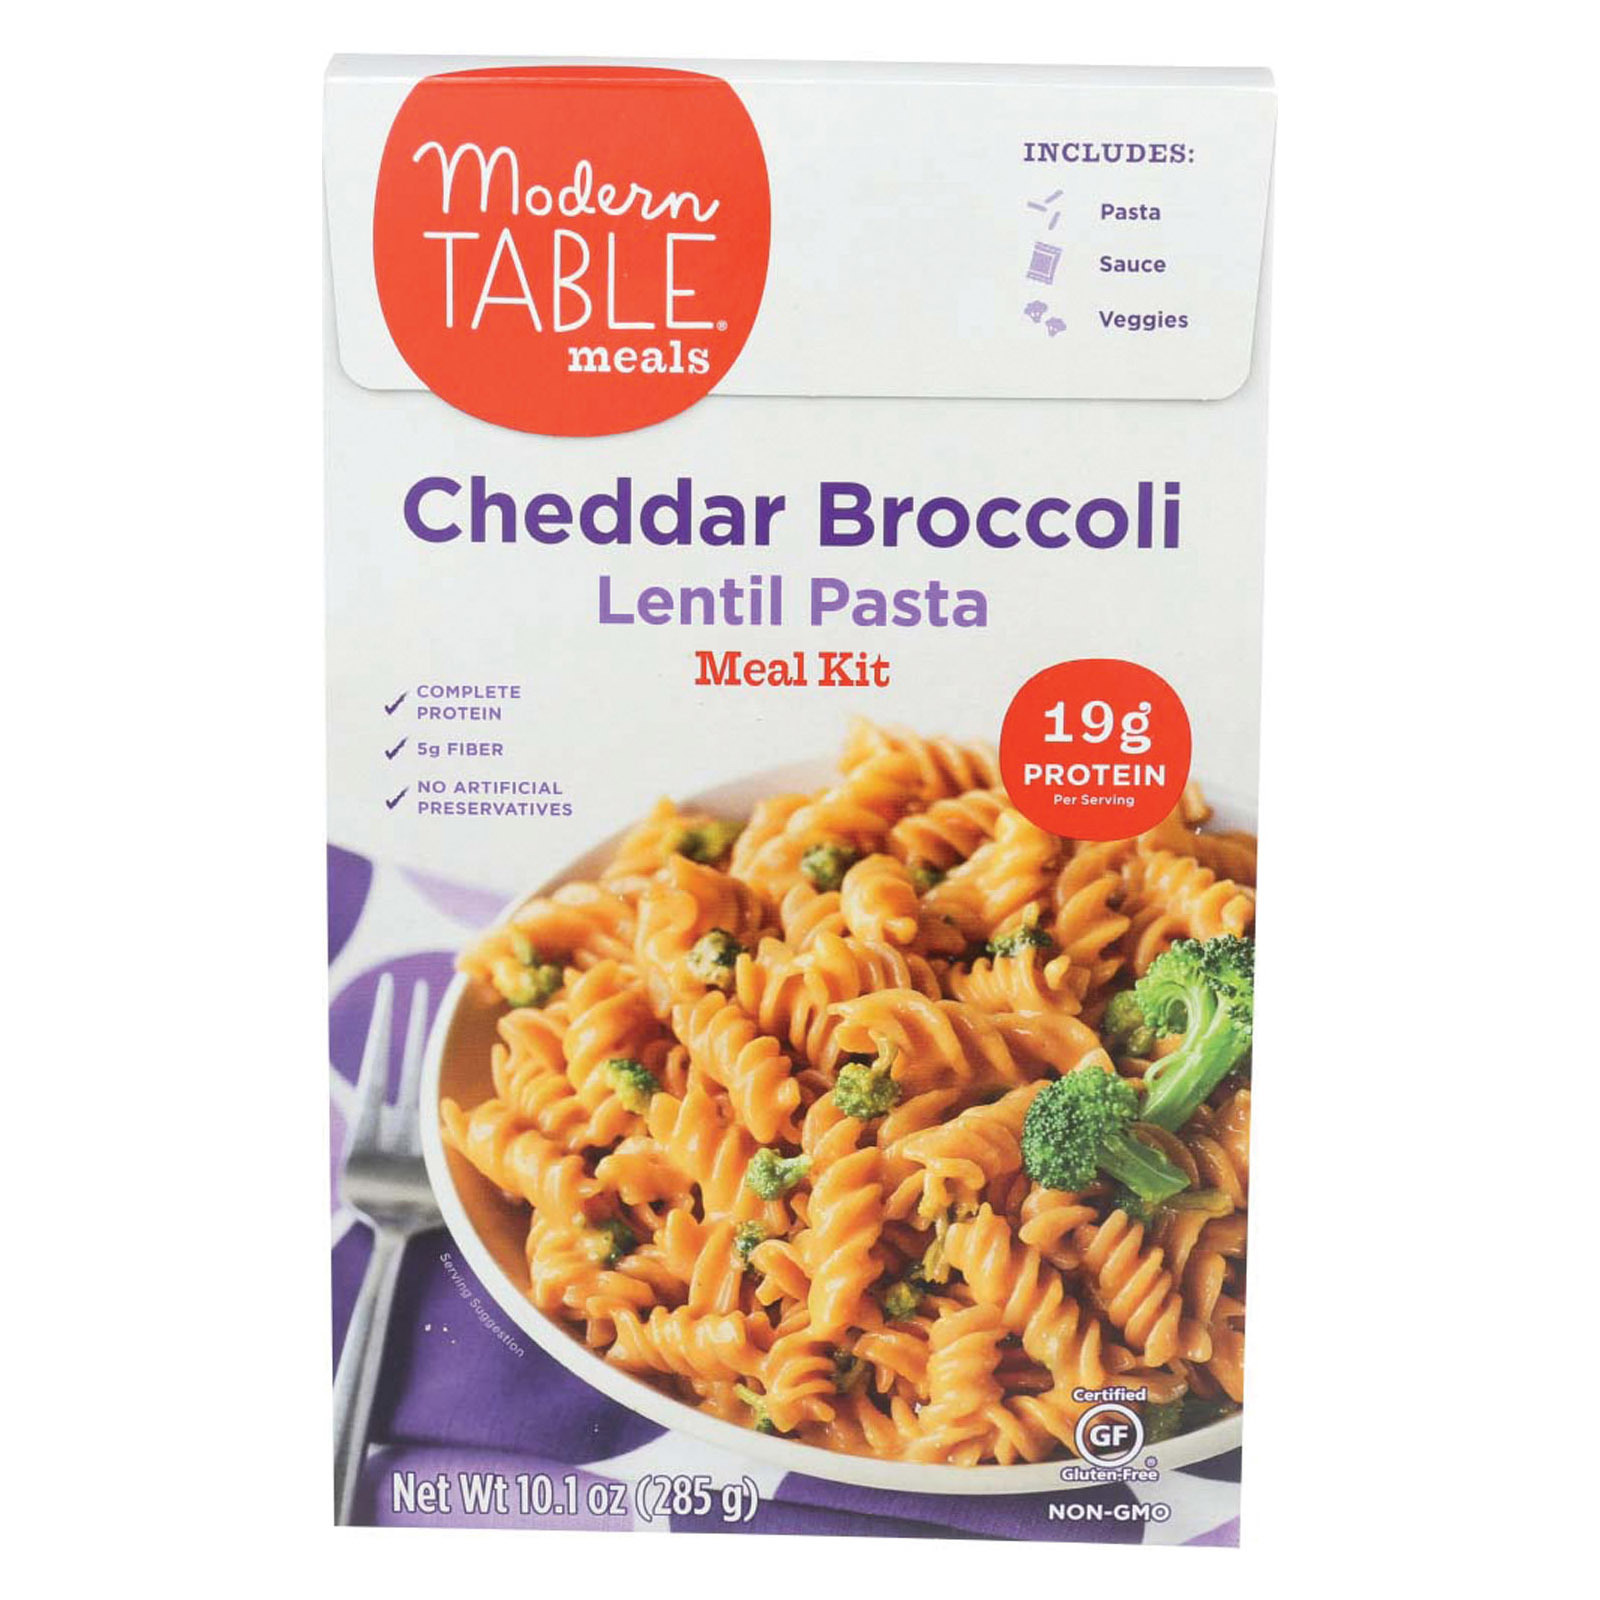 Modern Table Lentil Pasta - Meal Kit - Cheddar - Broccoli - Case of 6 - 10.1 oz